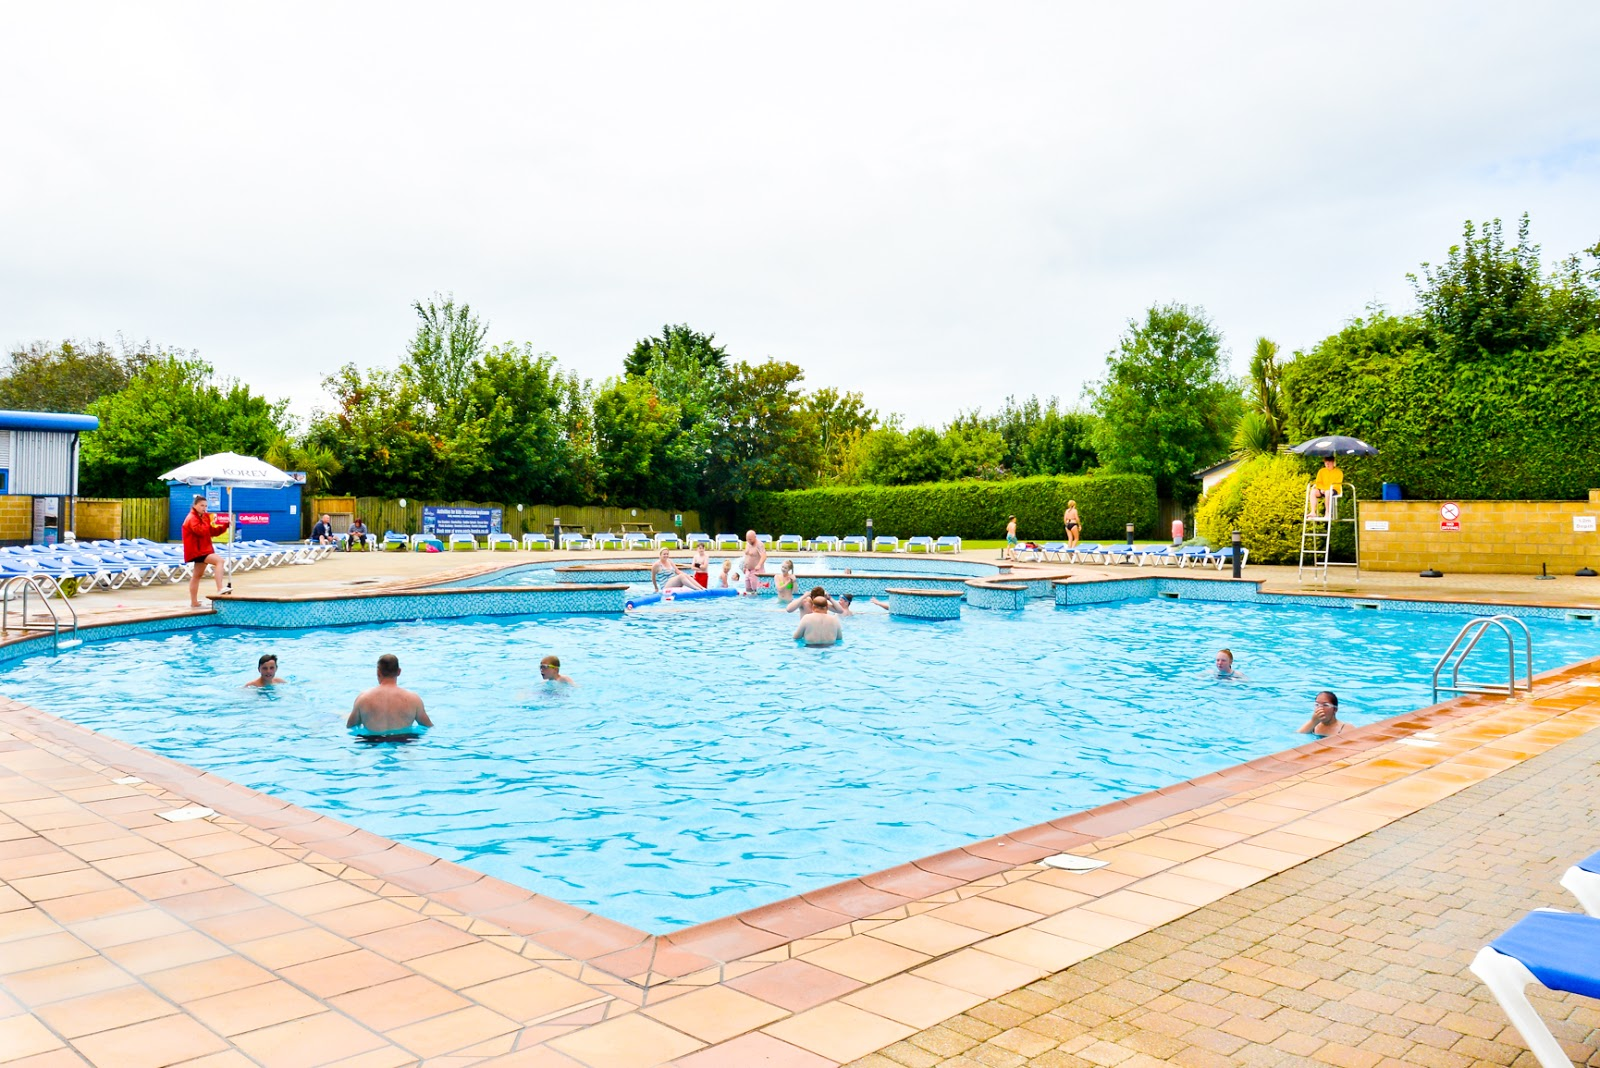 hendra holiday park review, hendra holiday park 2019, hendra holidays, oasis pool